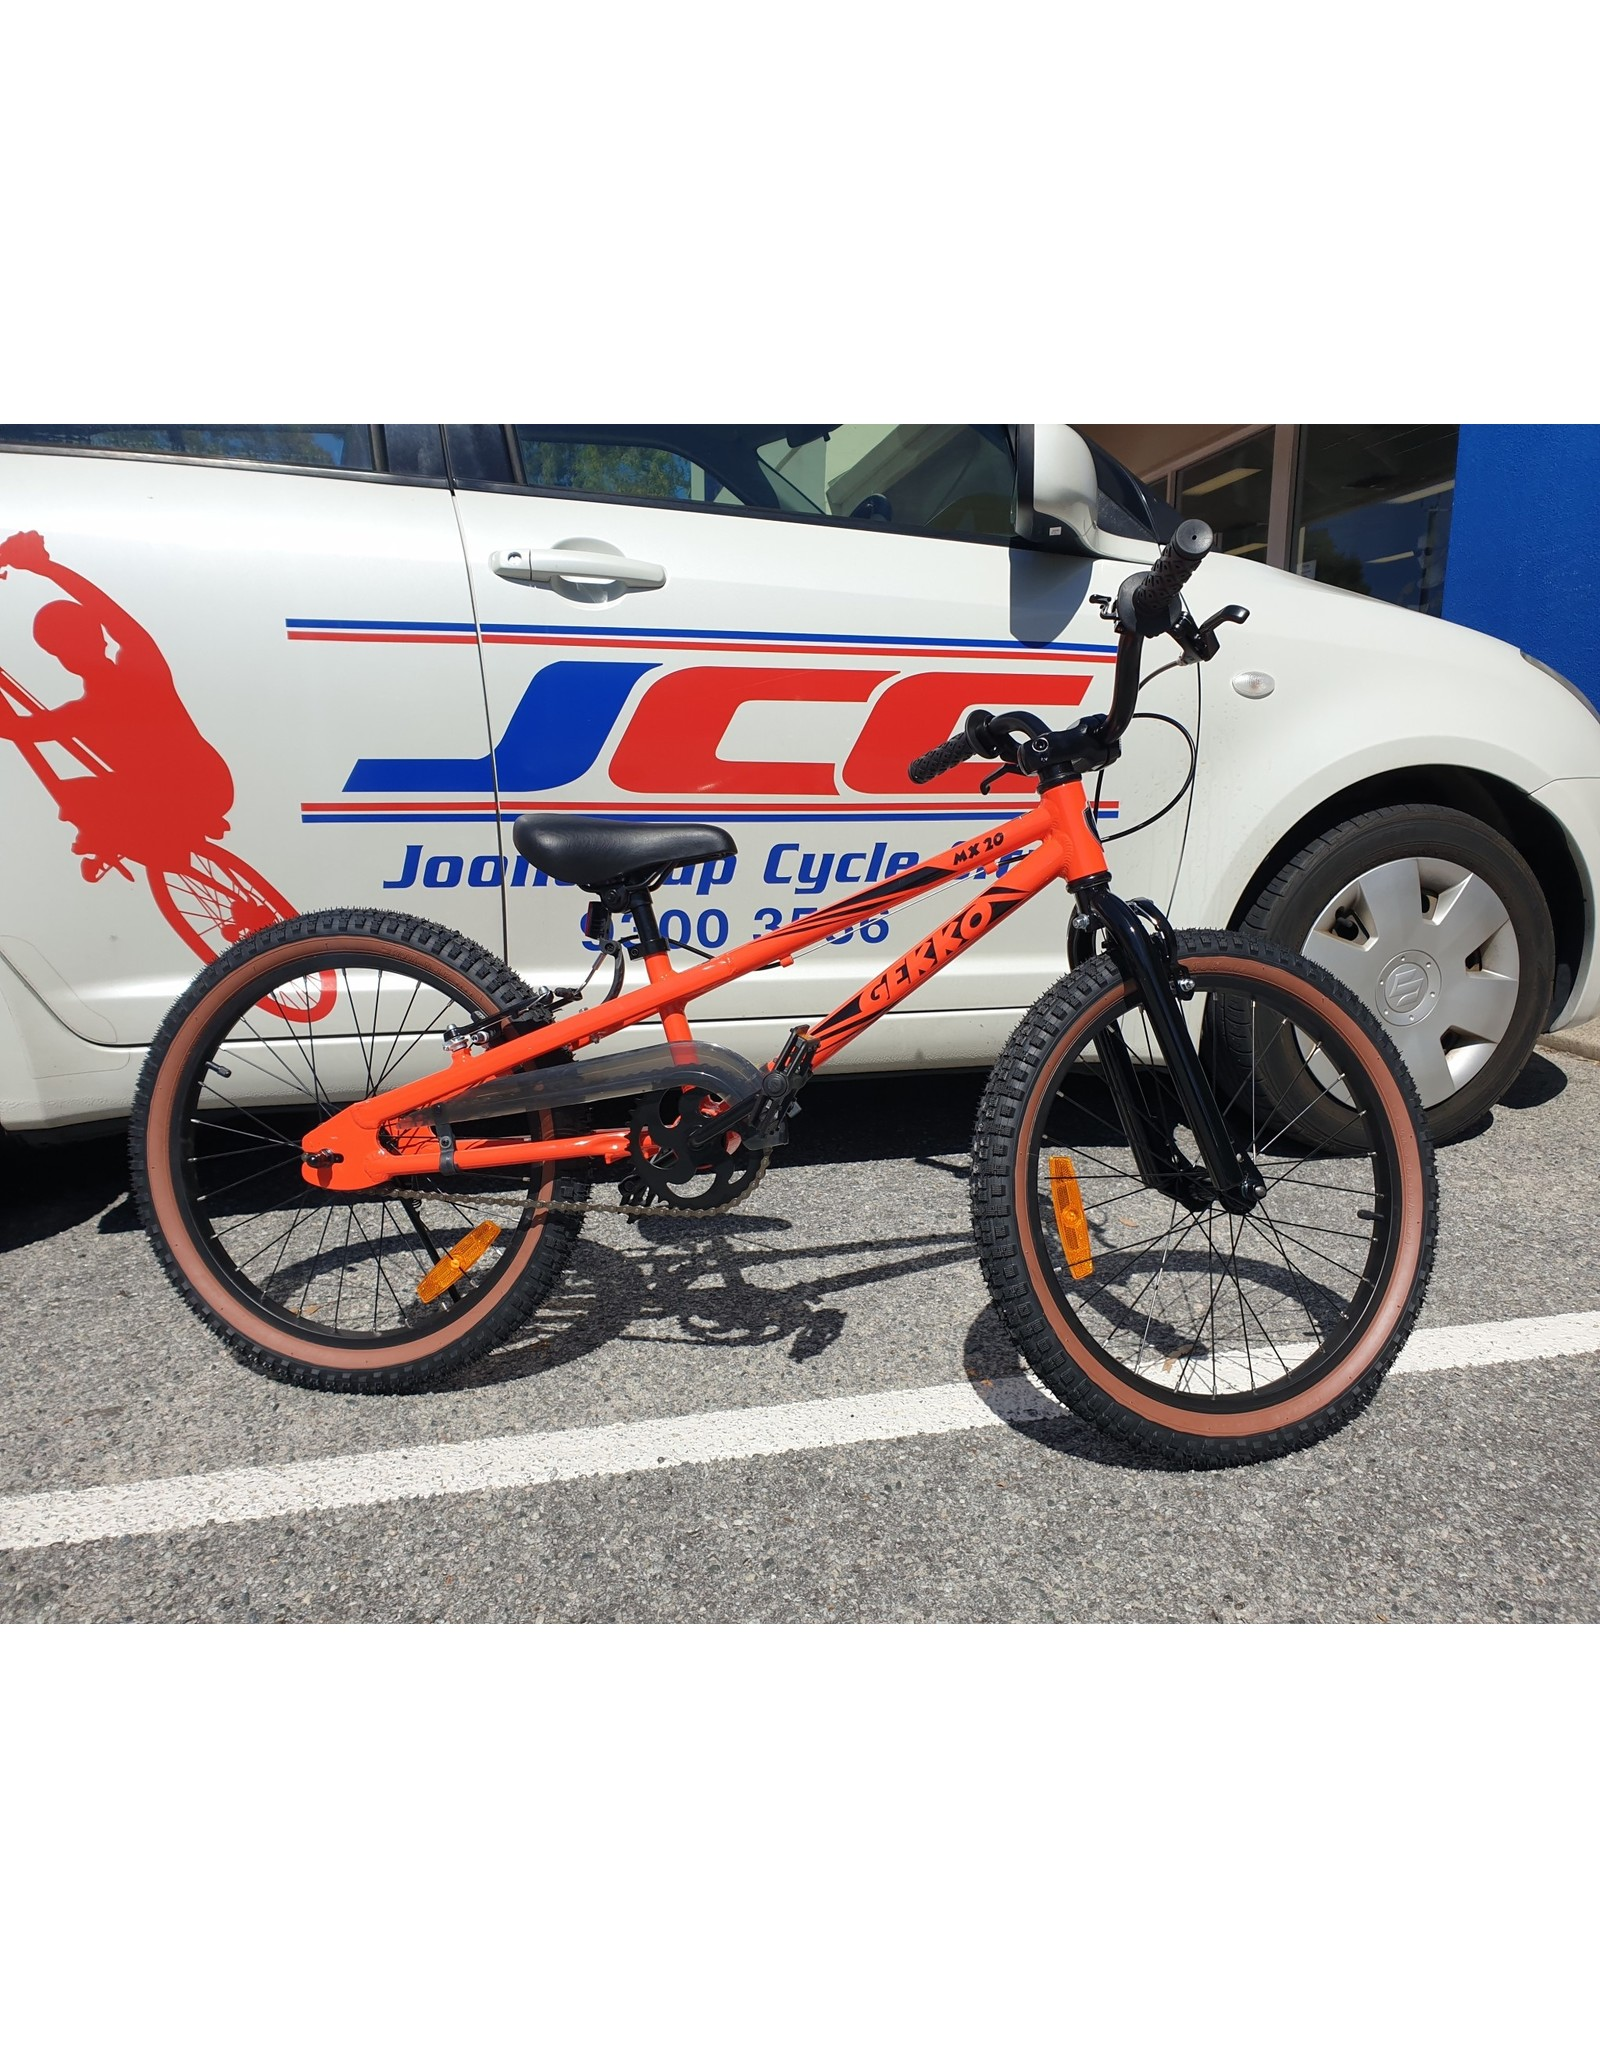 GEKKO Gekko MX20 Freewheel 2020 Orange 20""